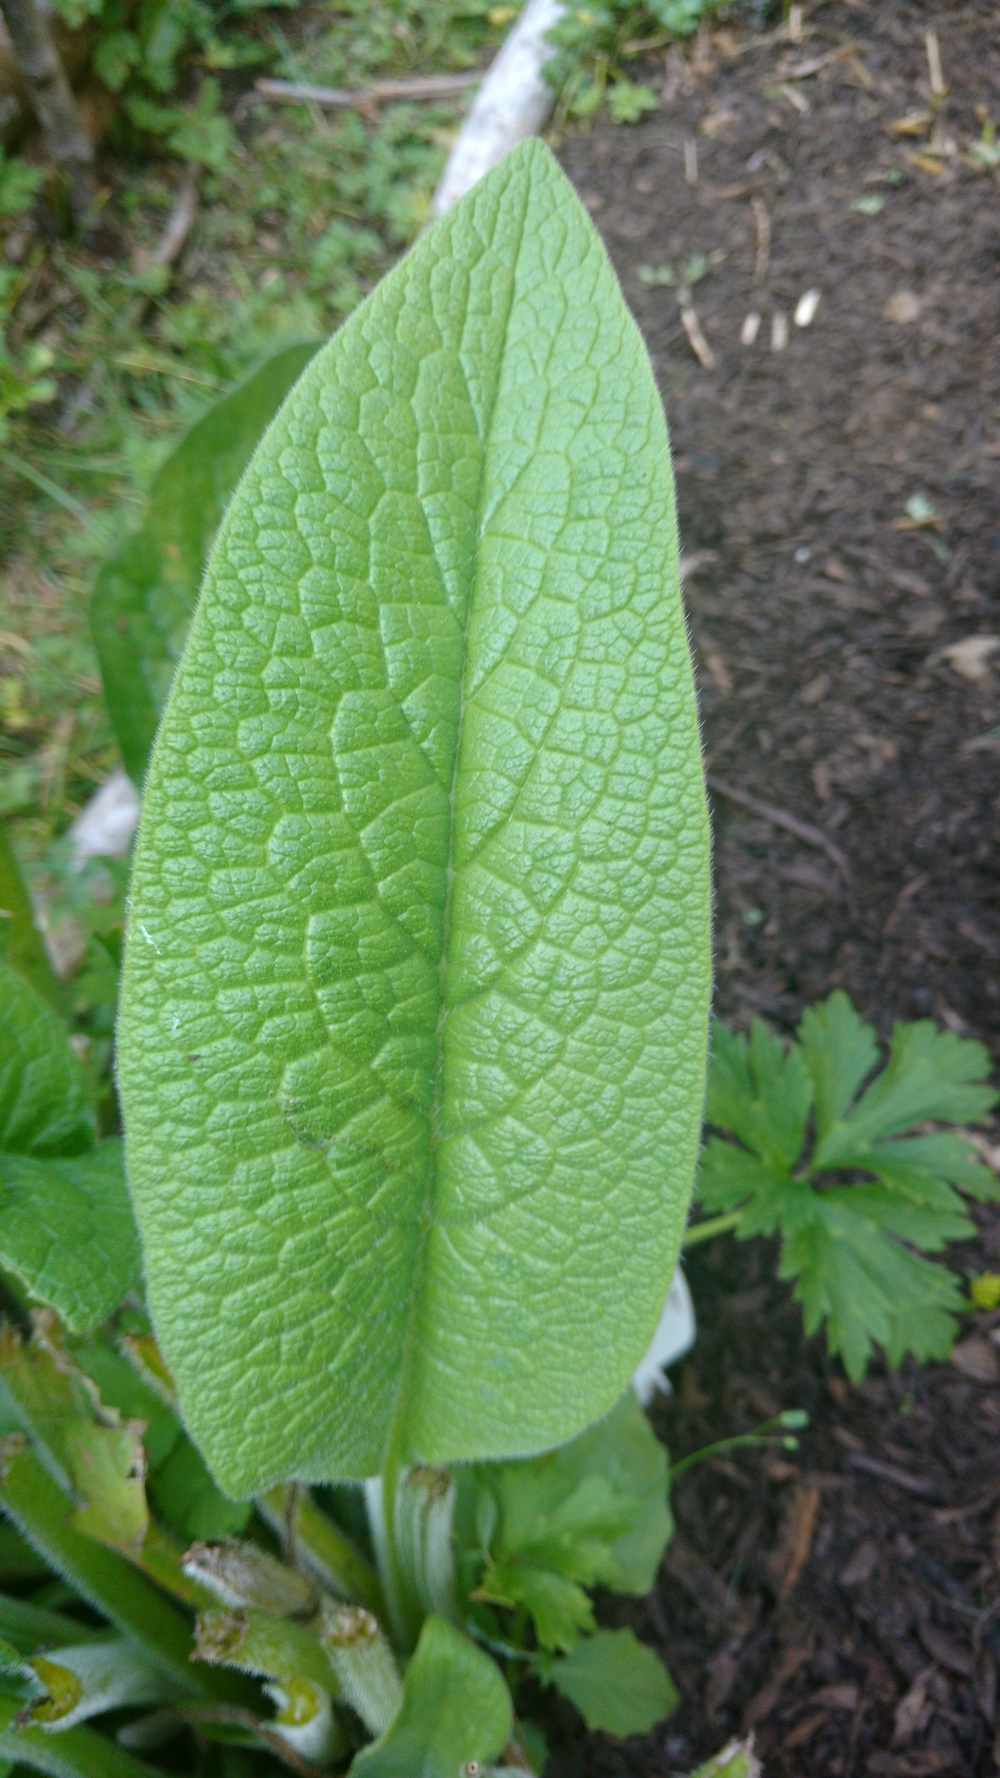 ComFrey (Leaves have stiff hairs and edges of leaf are smooth)